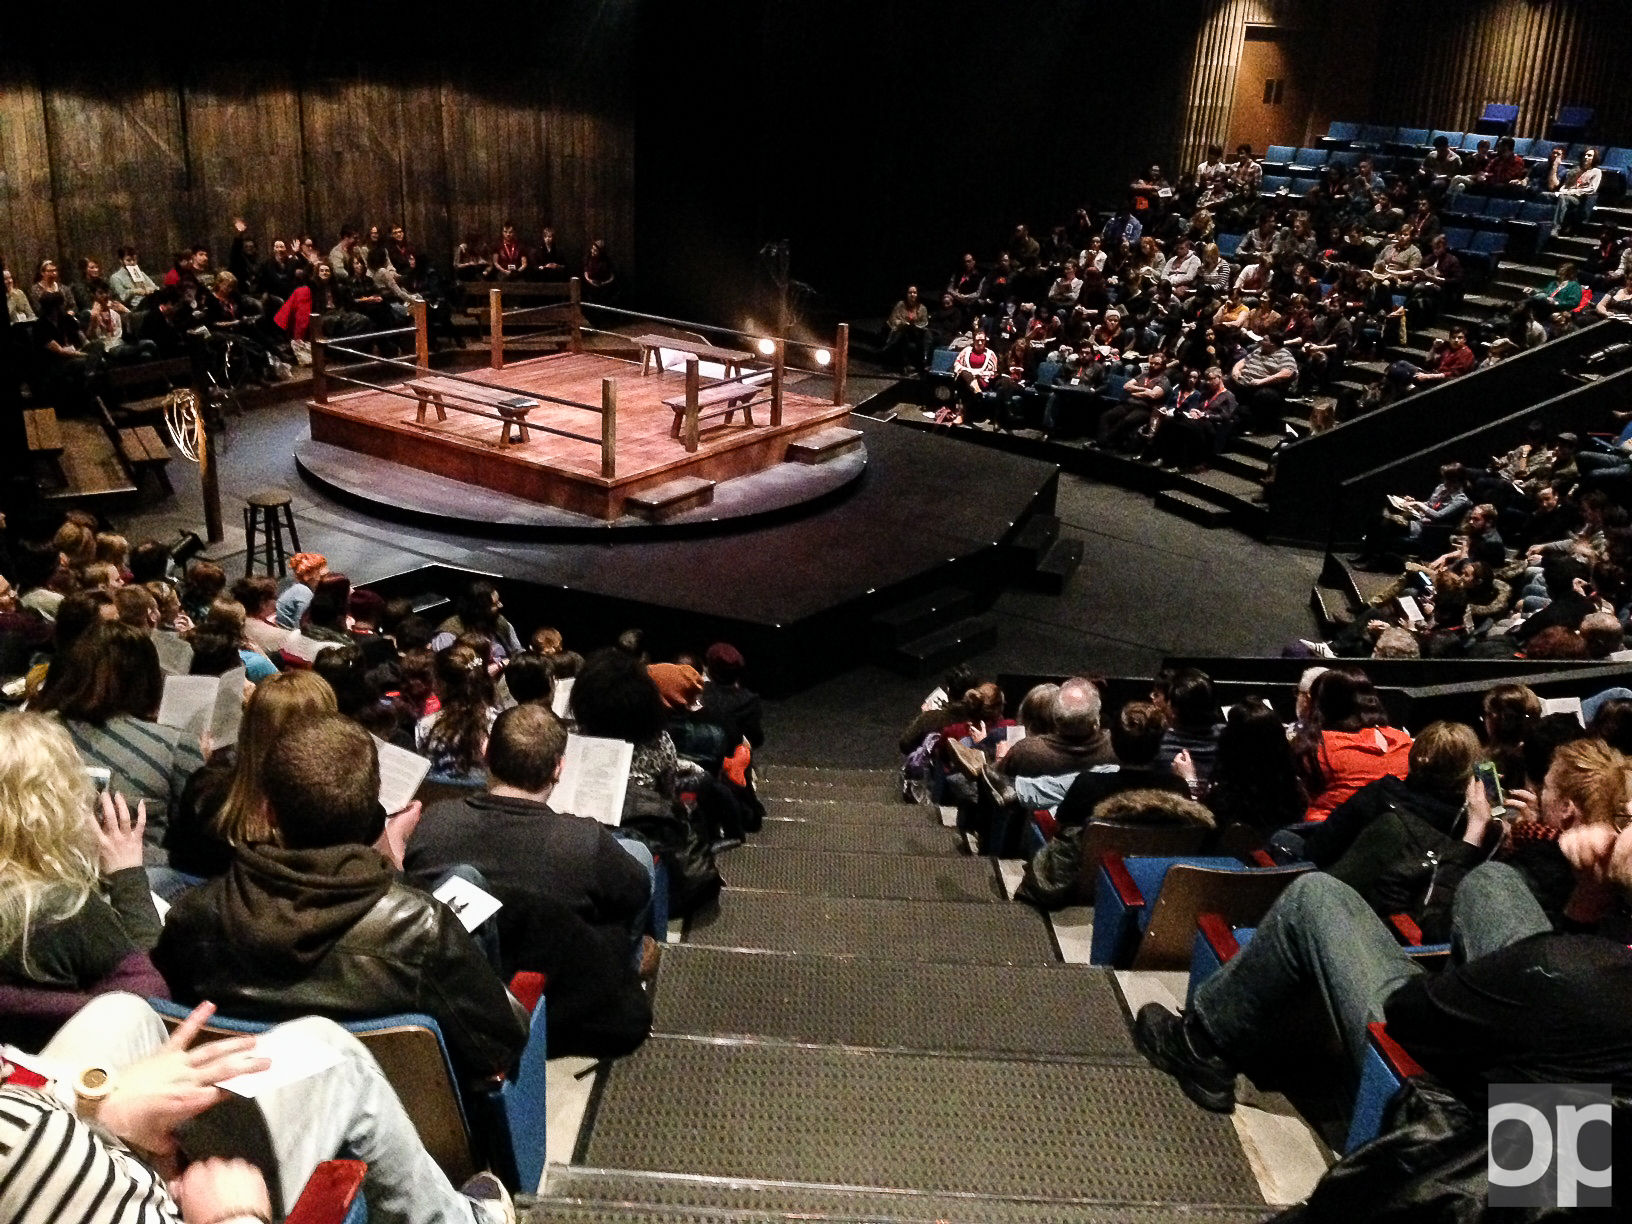 About 80 students from the OU theatre department went to Milwaukee to perform Equus in the American College Theatre Festival from Jan. 5-9.